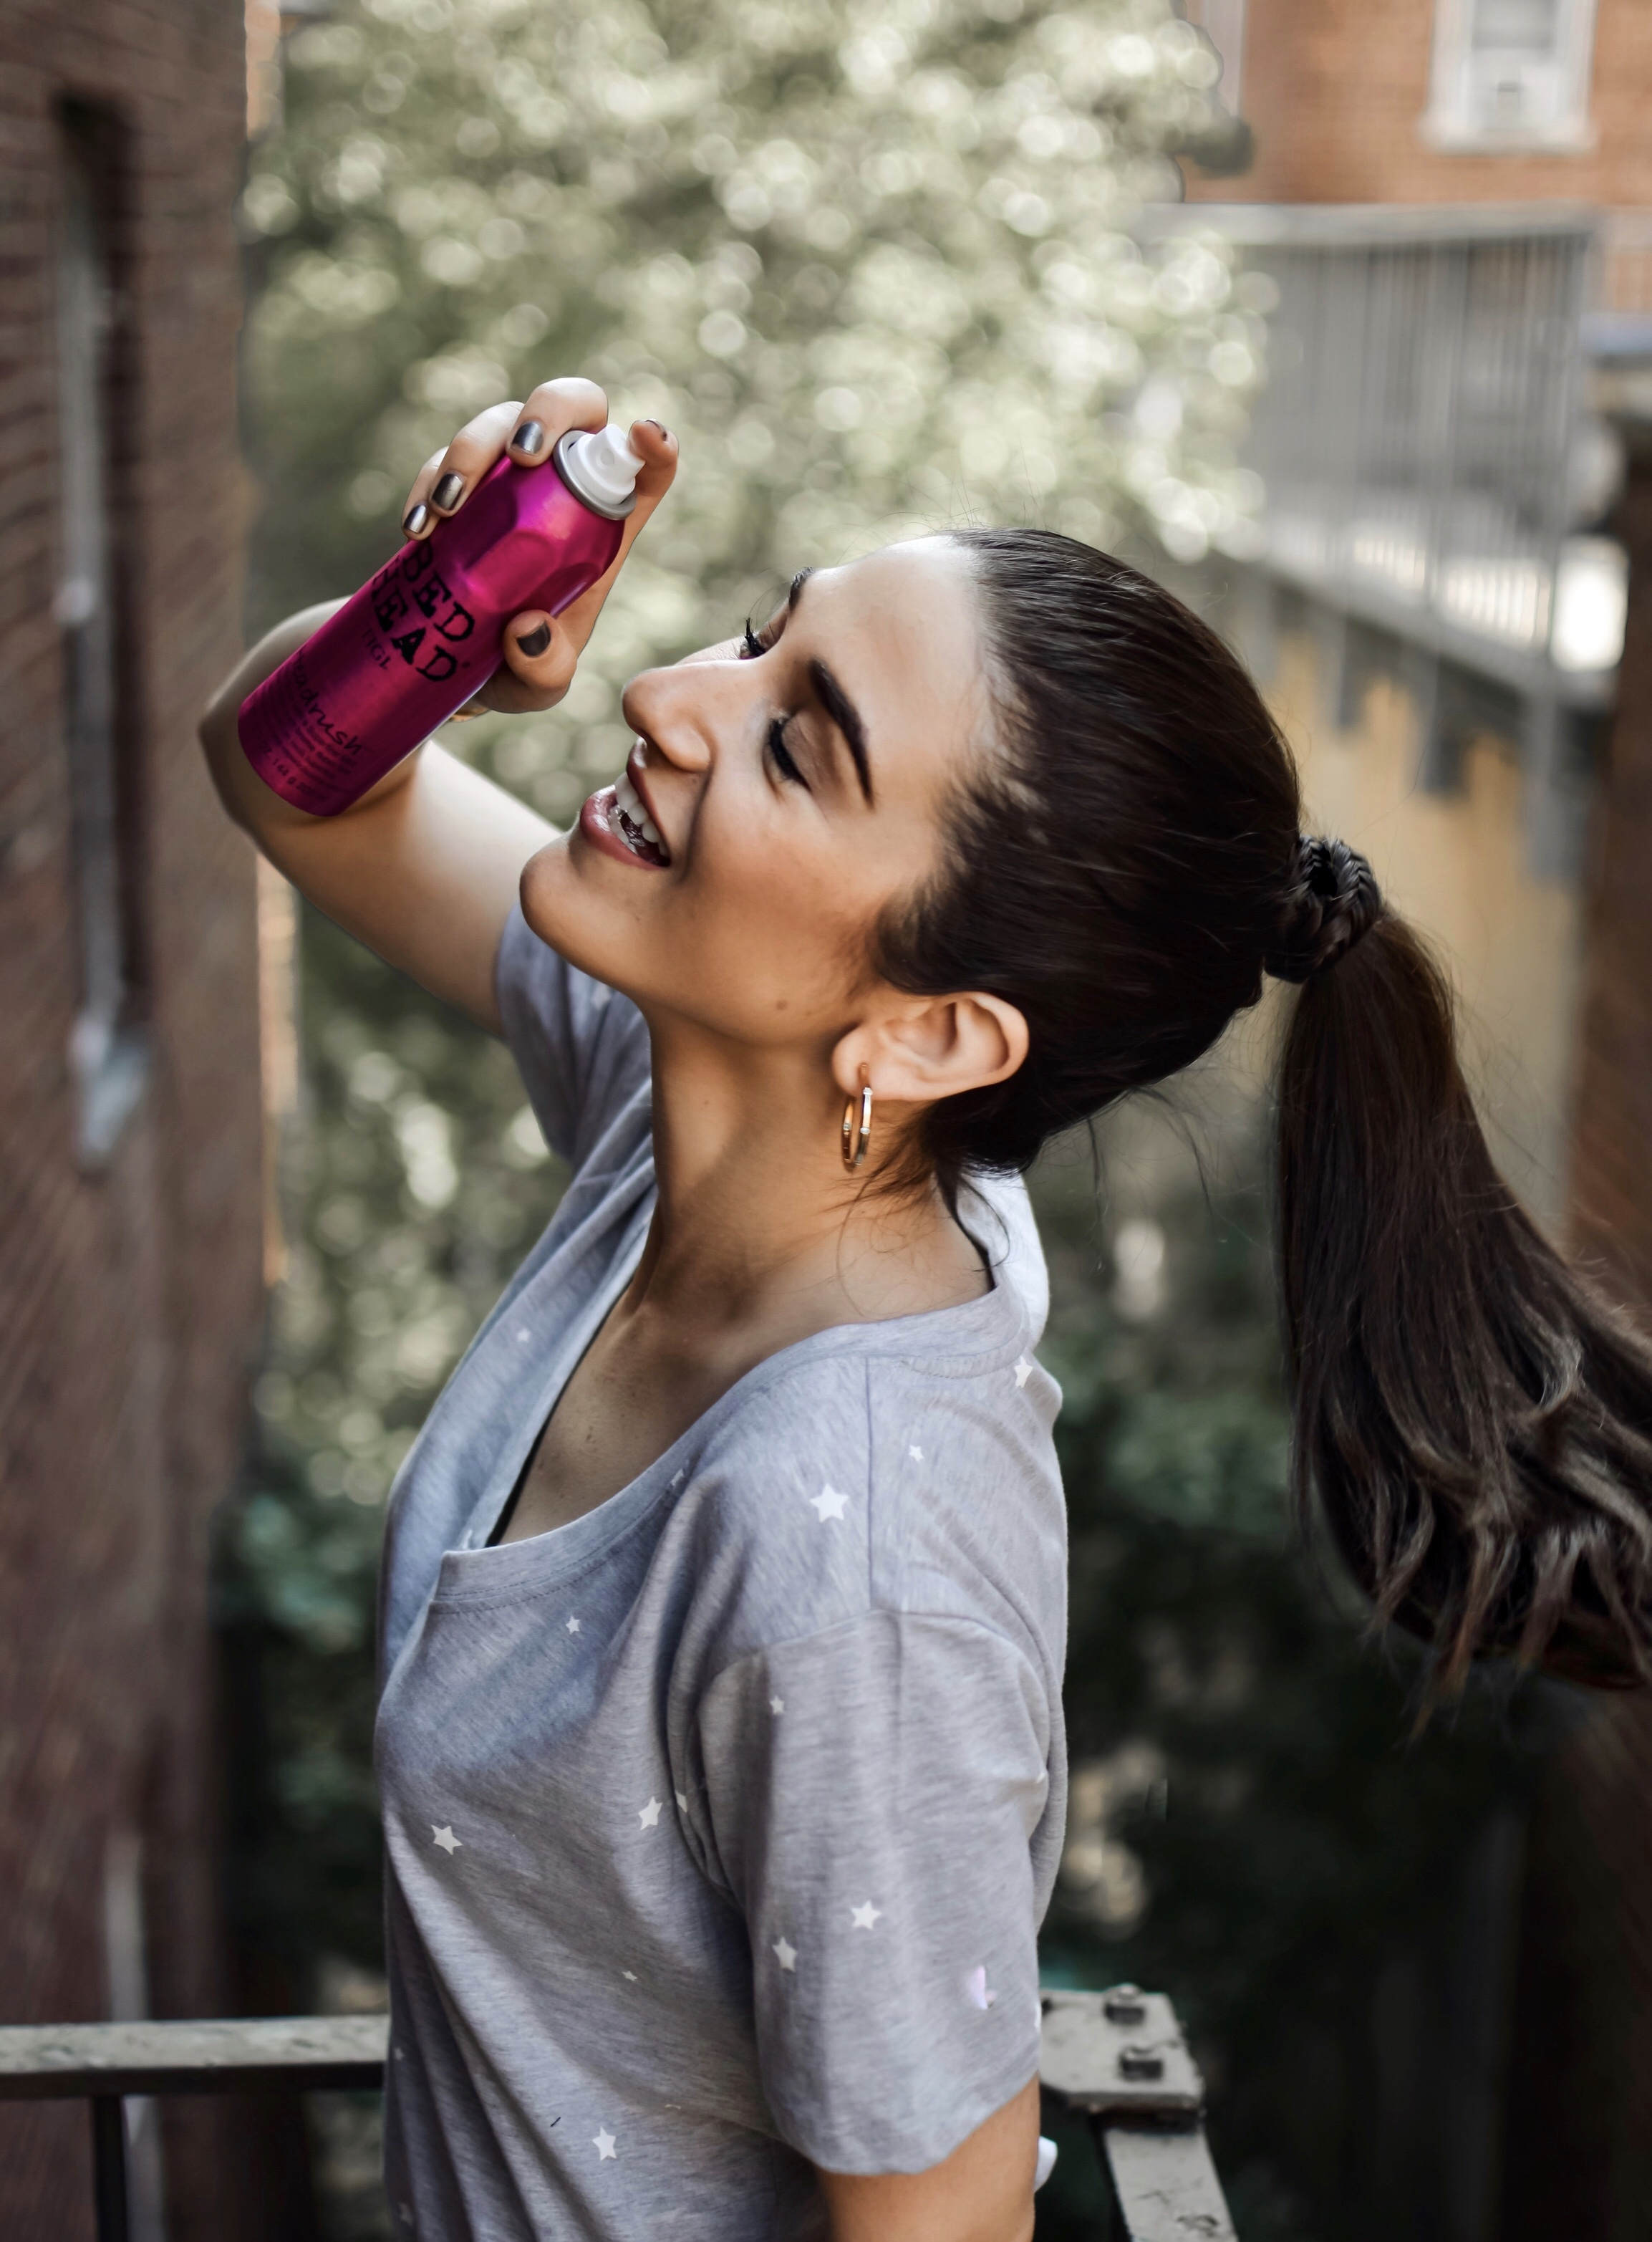 The Best Of Bed Head By TIGI Hair Products Esther Santer Fashion Blog NYC Street Style Blogger Outfit Trendy Silk Eye Mask Pink Pajamas Ponytail Braid Review Ulta Shopping Flowers Vanity Brush Girl Women Pigtails Anti Frizz Shine Spray Smoothing Cream.jpg